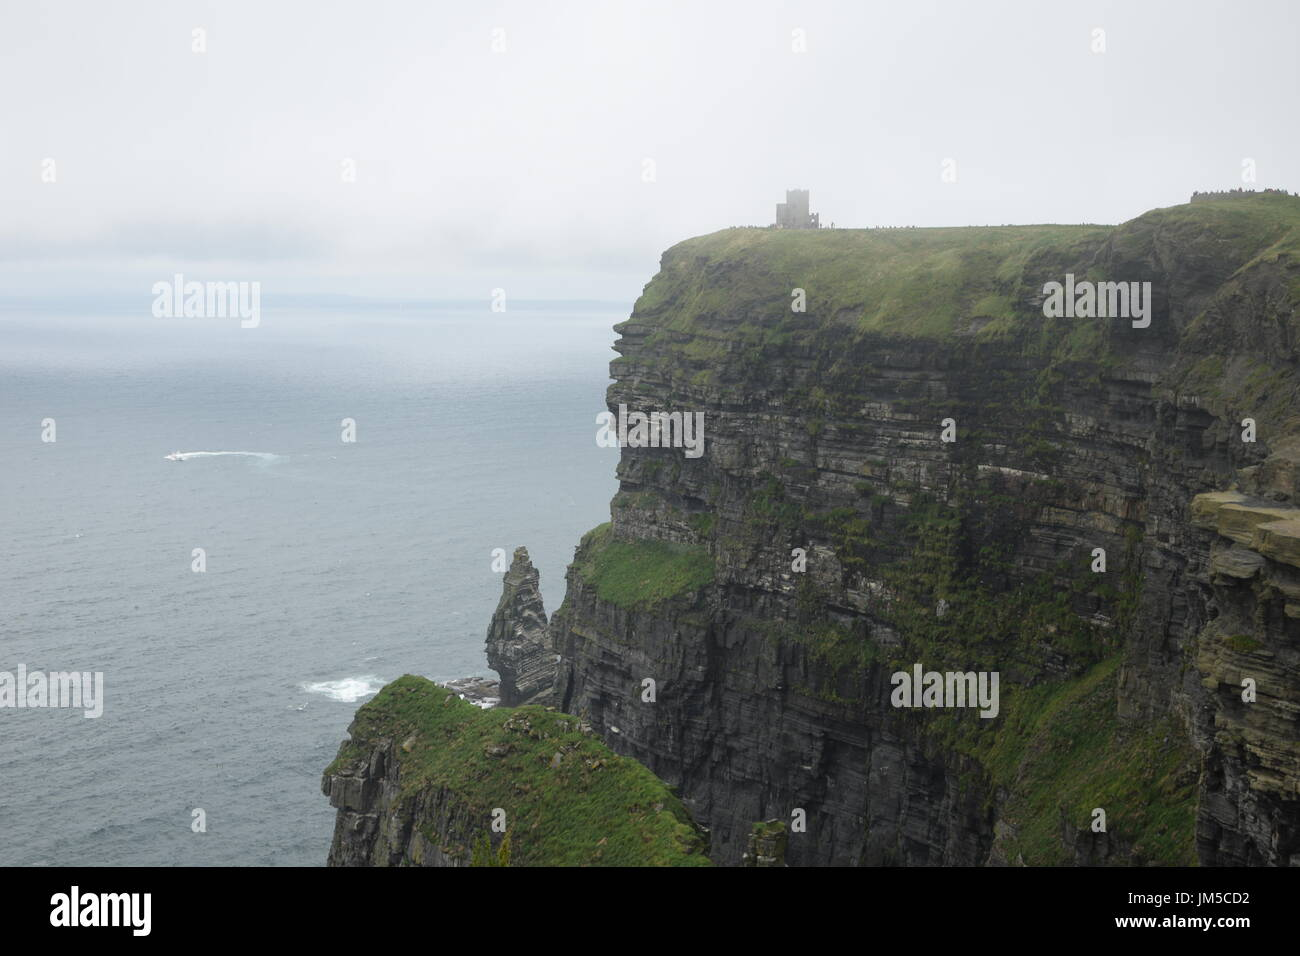 View of the Cliffs of Moher with O'Brien's Tower and Branaunmore sea stack in the County Clare, west Ireland Stock Photo